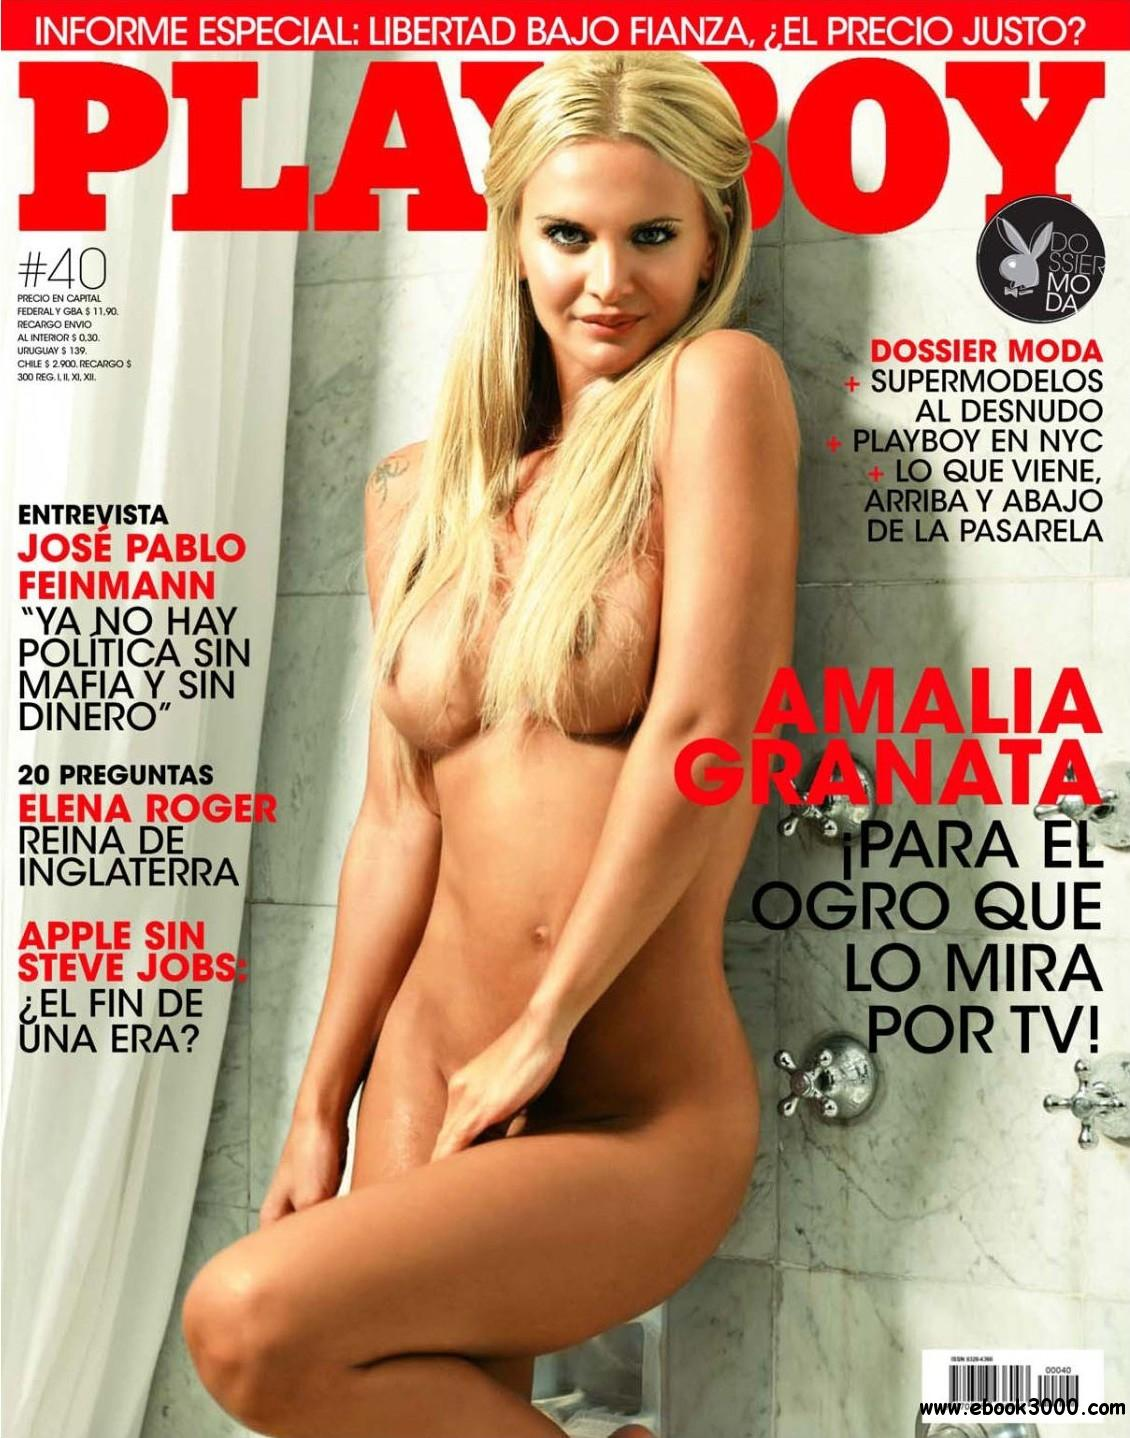 Playboy Argentina - April 2009 free download